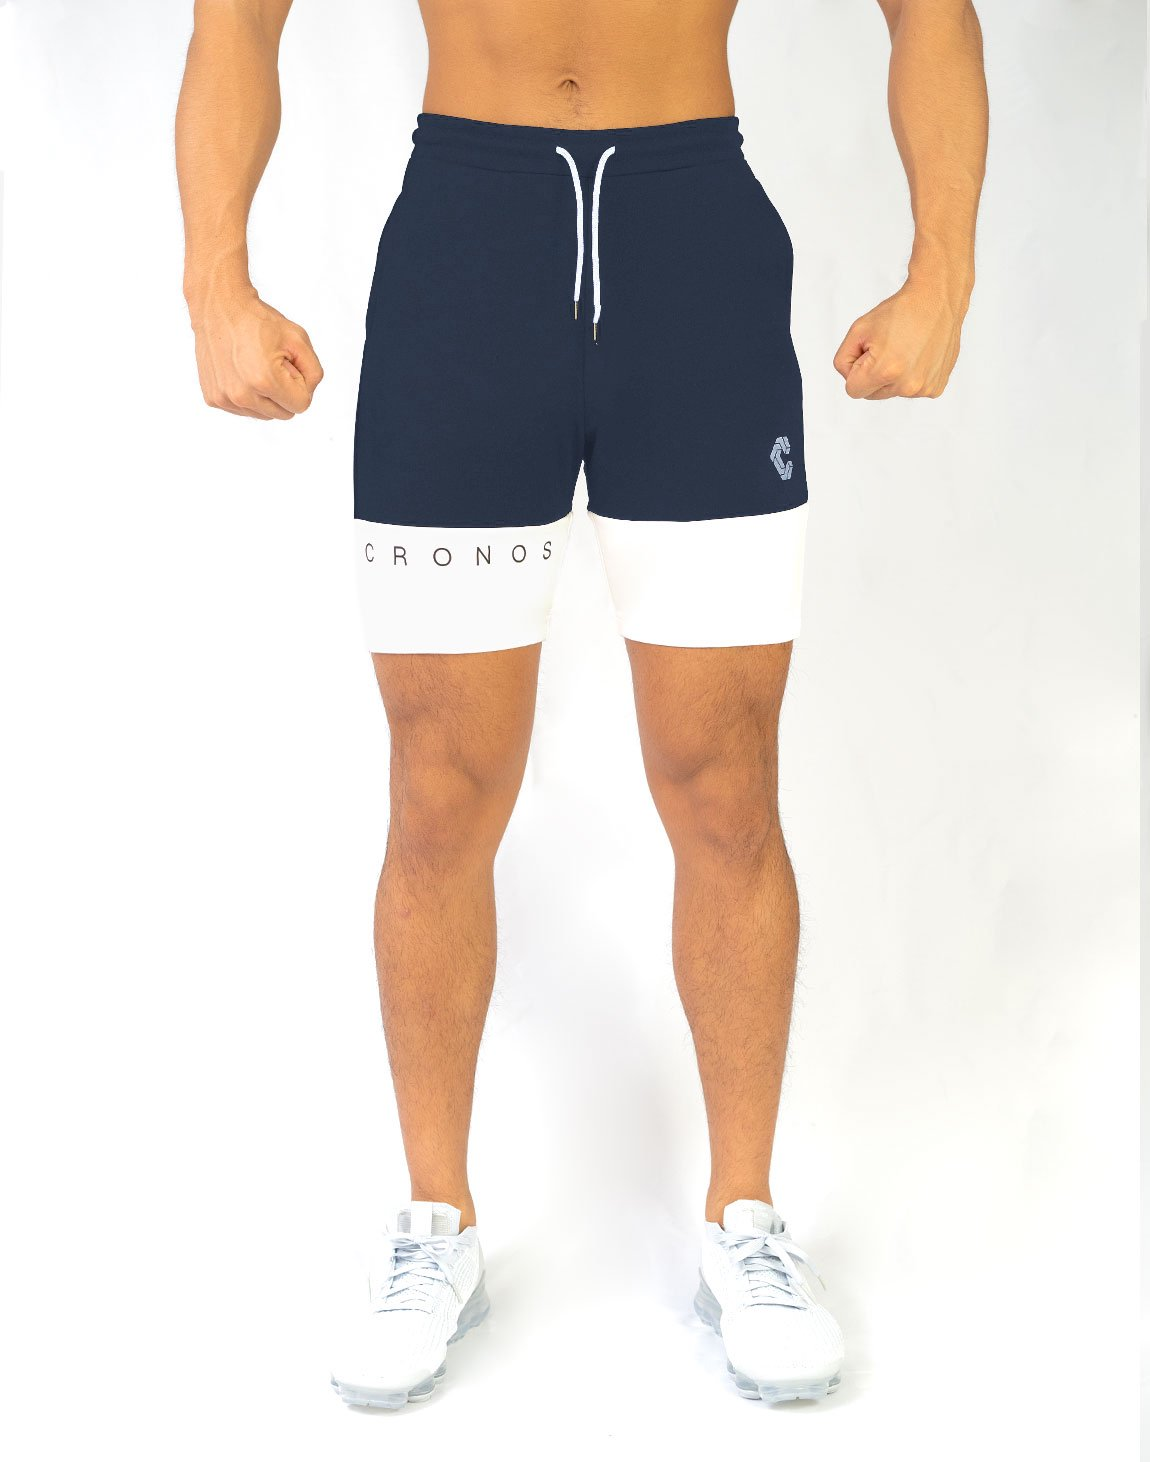 <img class='new_mark_img1' src='https://img.shop-pro.jp/img/new/icons55.gif' style='border:none;display:inline;margin:0px;padding:0px;width:auto;' />CRONOS TWO COLOR SHORTS【NAVY】